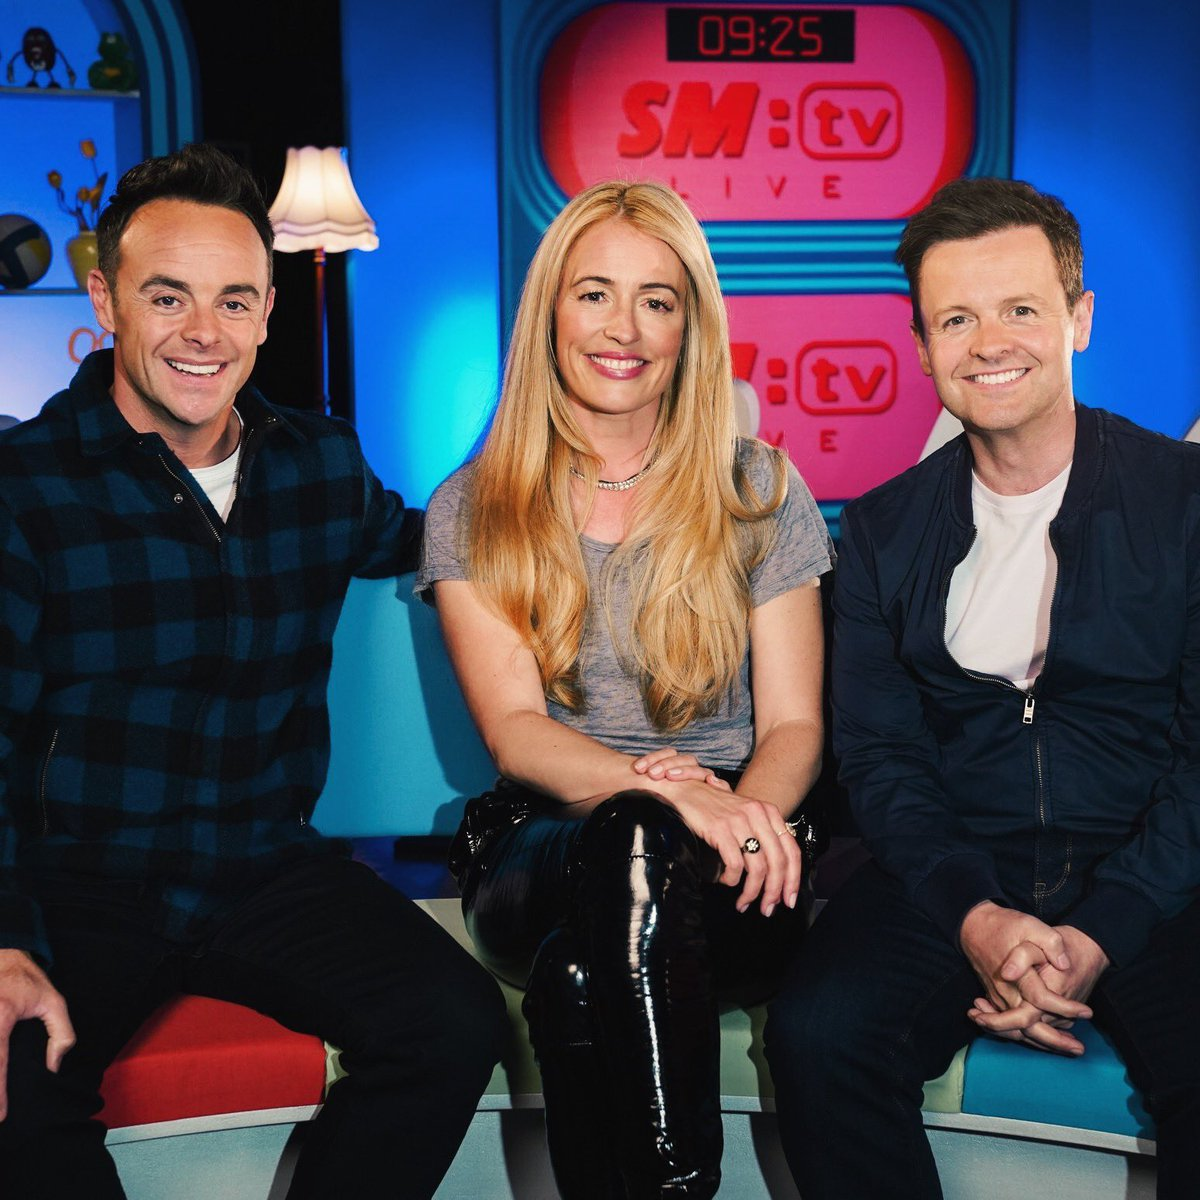 A first look at Ant & Dec's SMTV Live reunion with Cat Deeley. Feeling seriously nostalgic💙❤️  Tickets to the next NTAs out now! https://t.co/7cO8sGZRYE https://t.co/9JPHw6cjcW